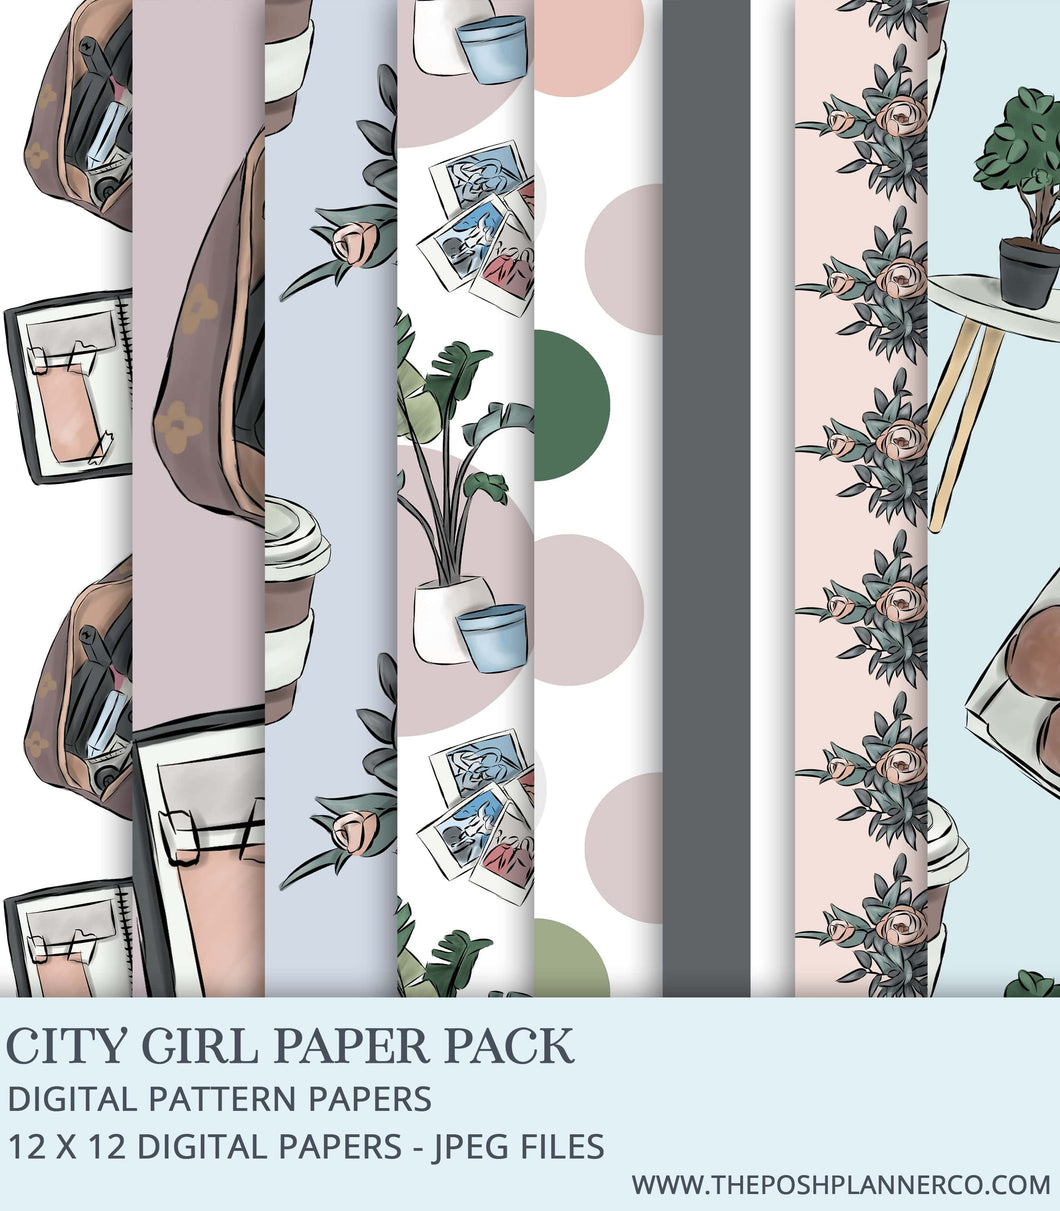 Digital Paper Pack - City Girl - Seamless Fashion Papers